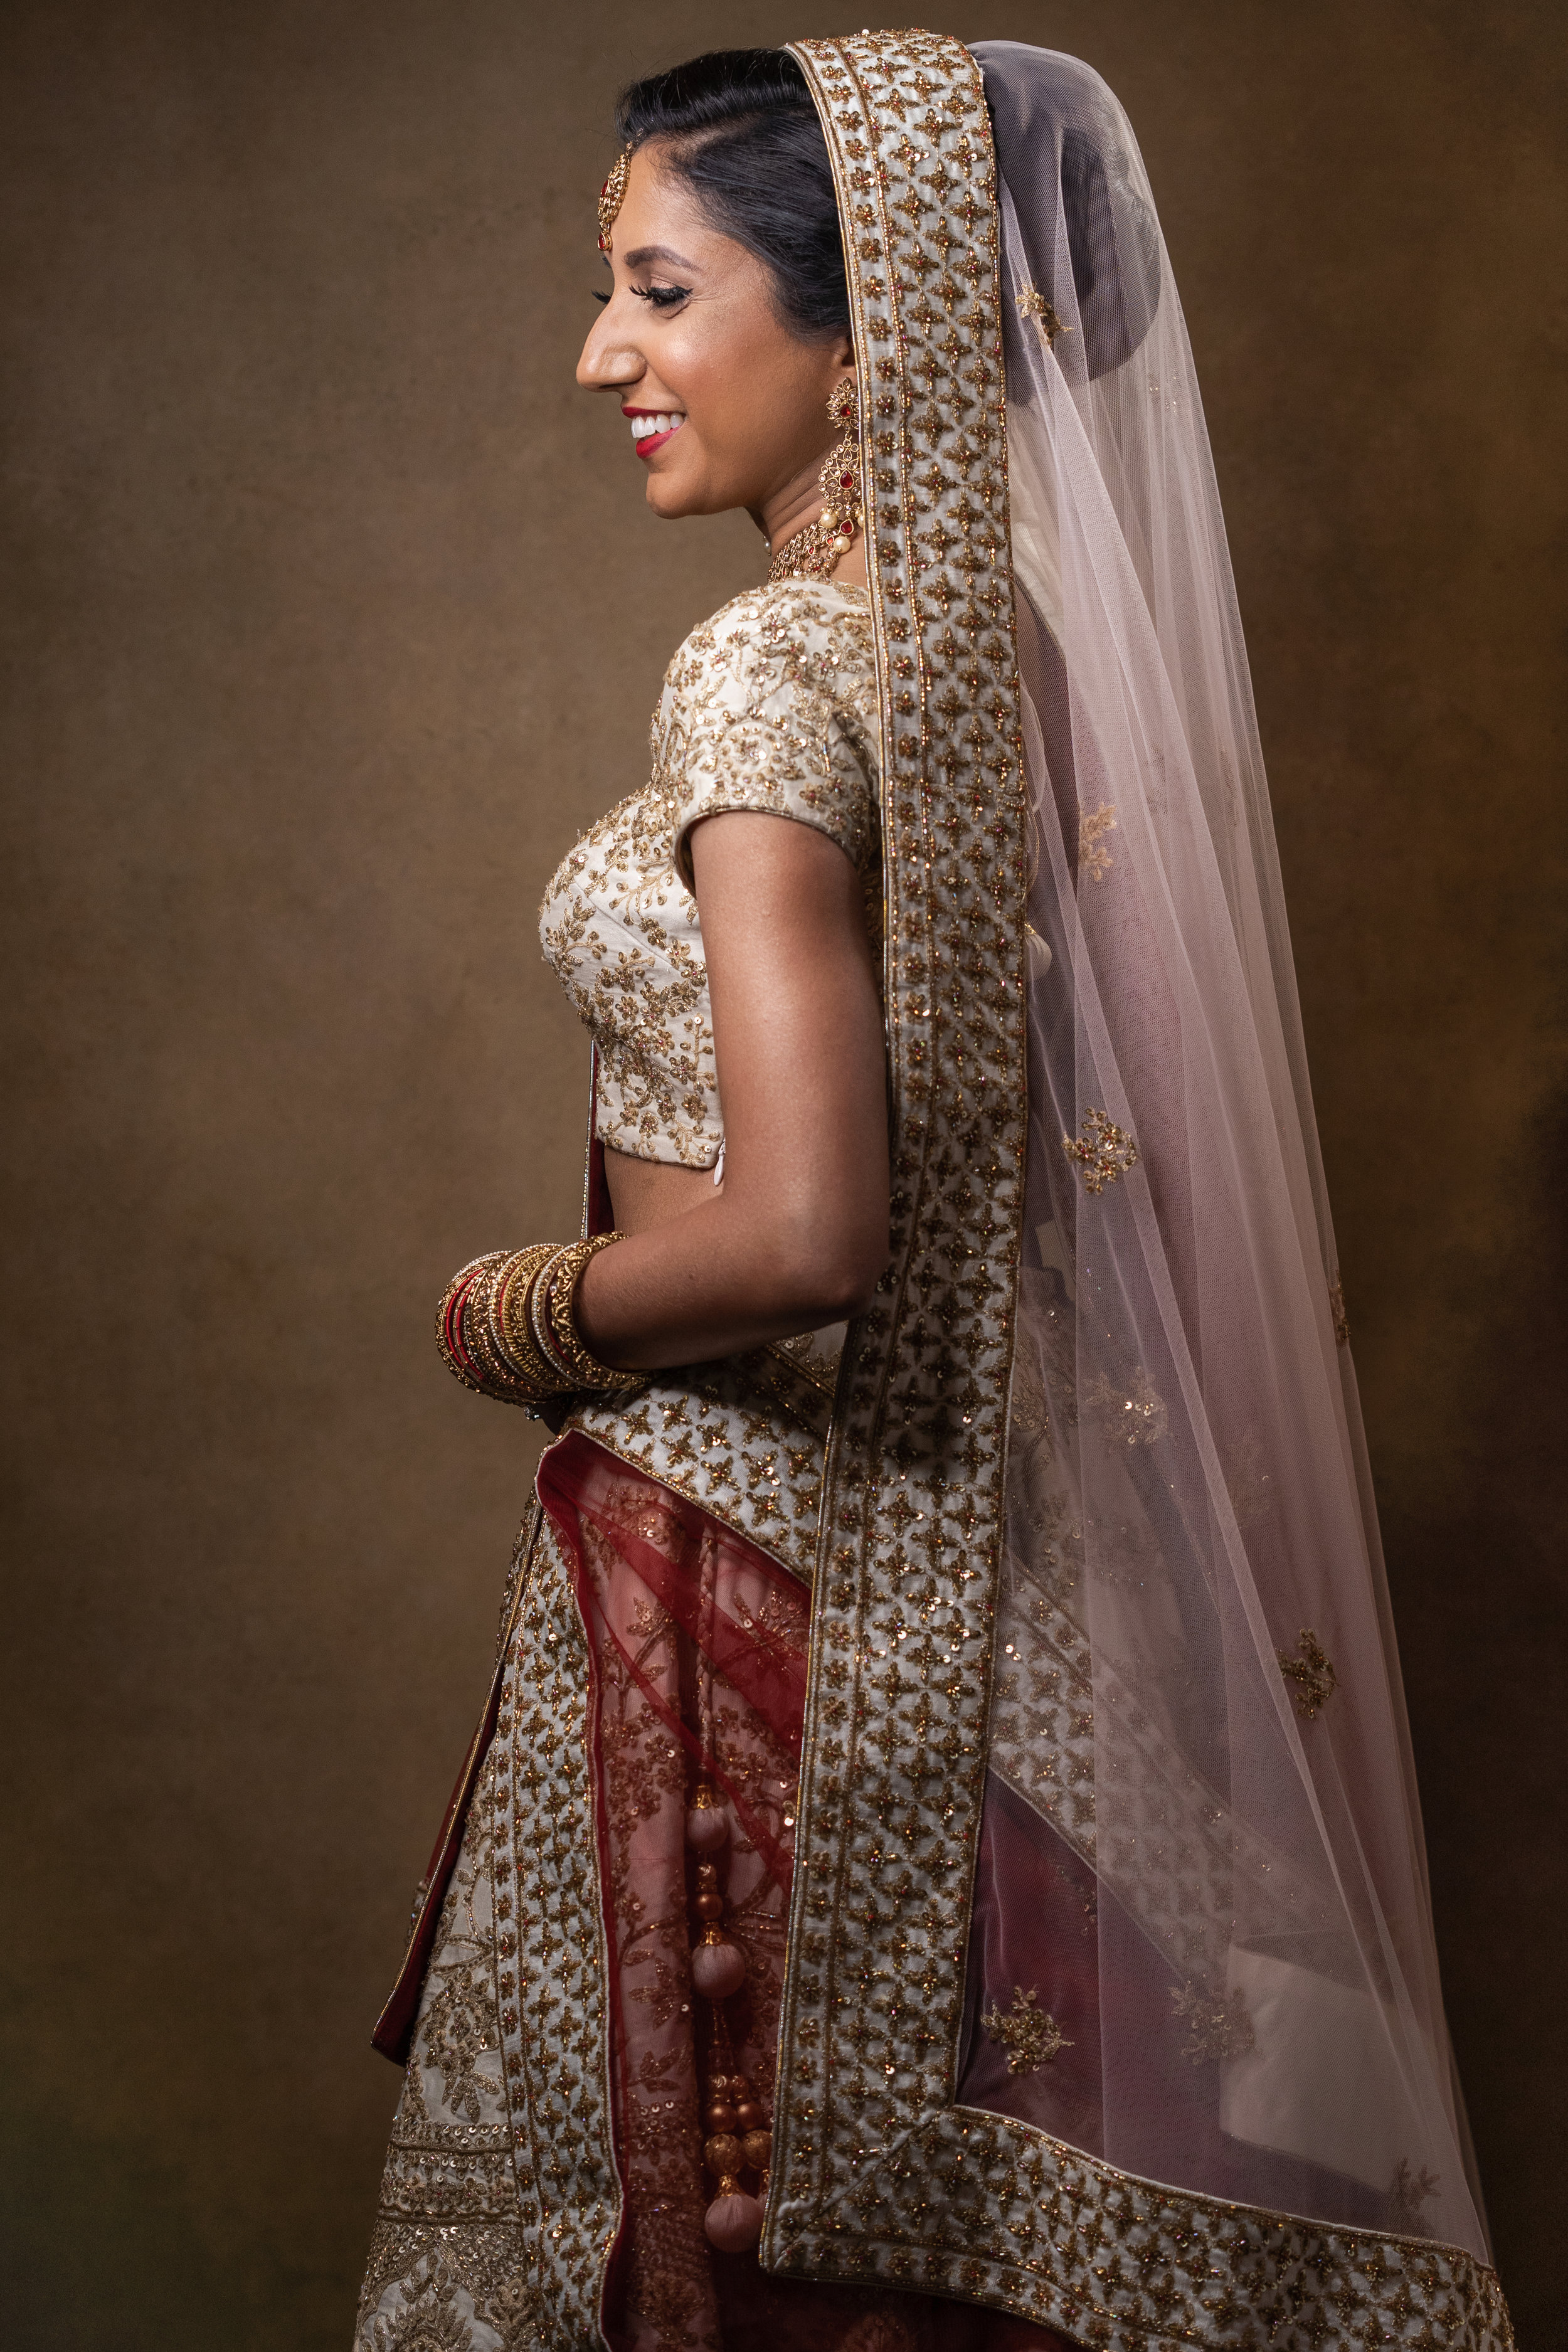 Meet Prathna our stunning bride from her bridal portrait shots prior to her Hindu Wedding in Leicester